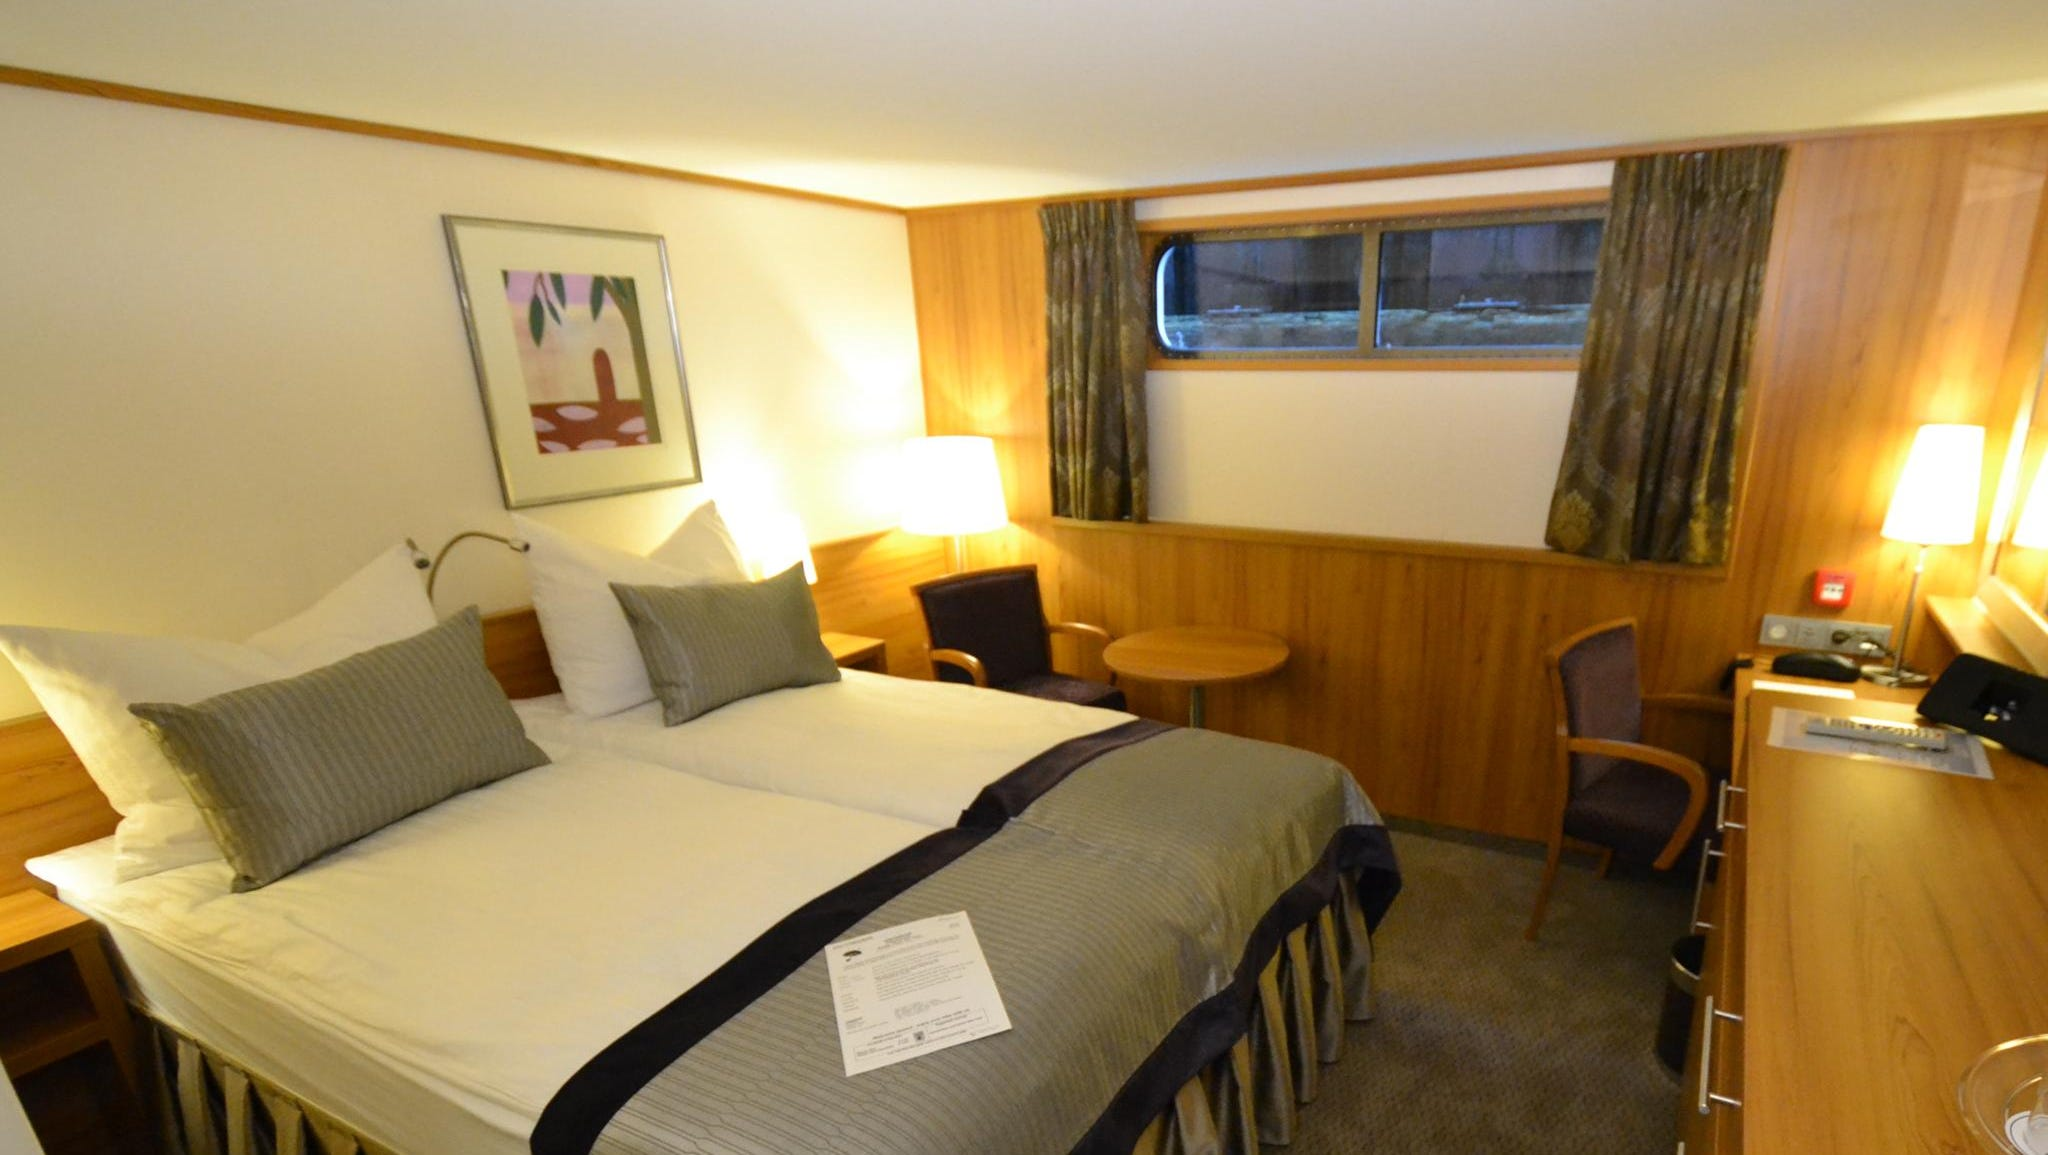 Standard cabins on the ship, such as the one shown here, are 165 square feet. Most have French balconies looking out over the water, though some standard cabins on the ship's lowest desk (such as this one) only have windows.